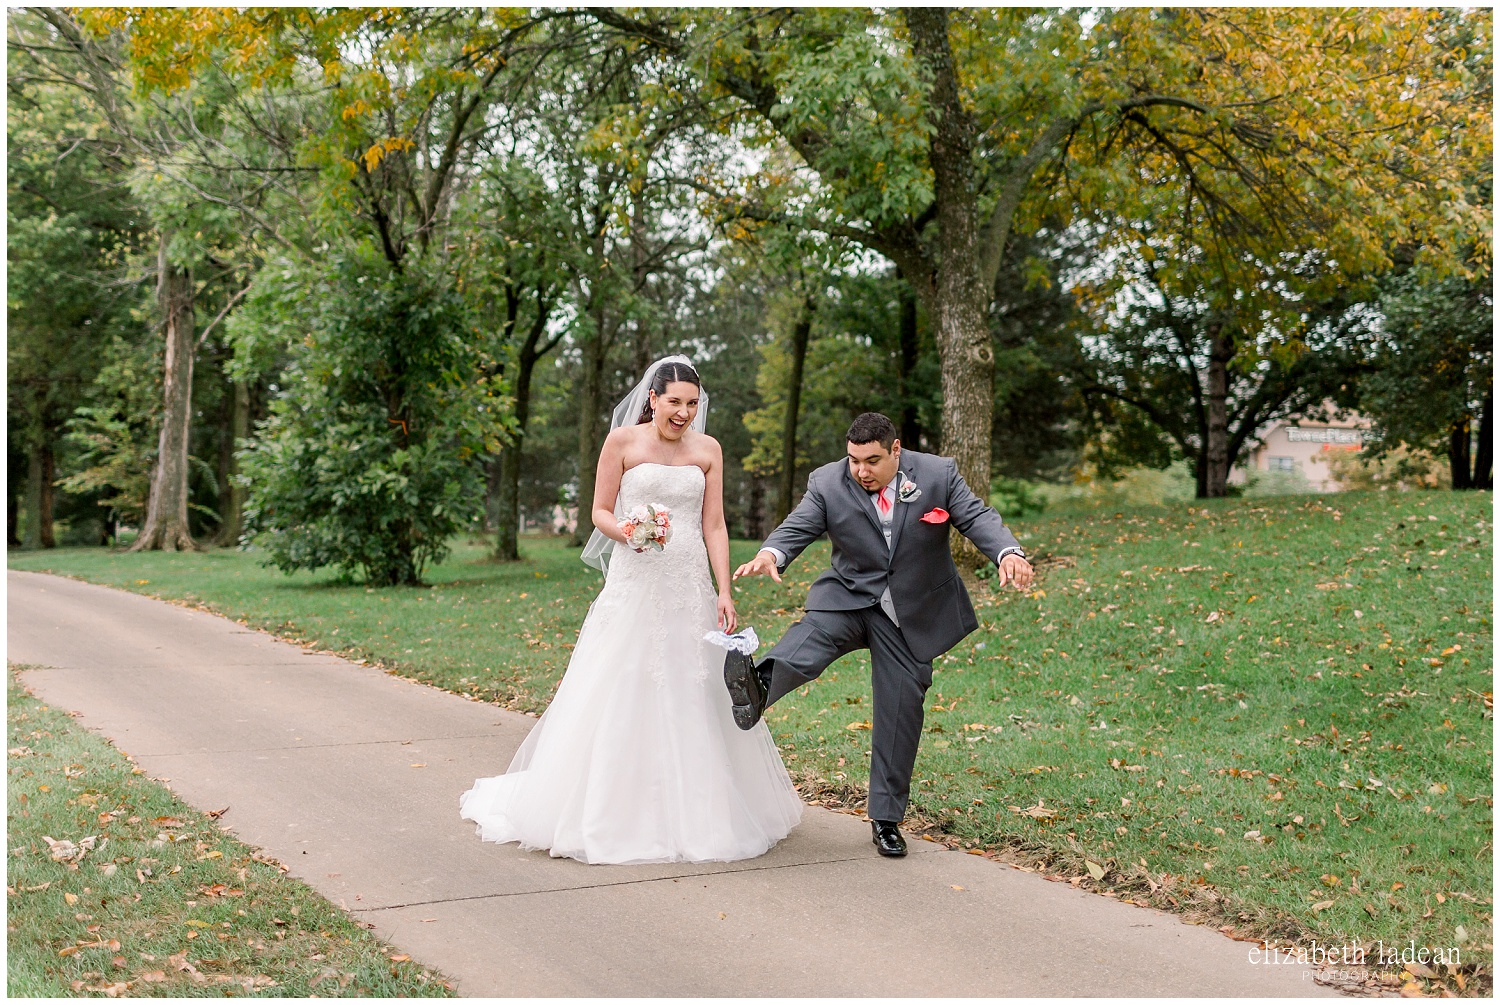 -behind-the-scenes-of-a-wedding-photographer-2018-elizabeth-ladean-photography-photo_3572.jpg